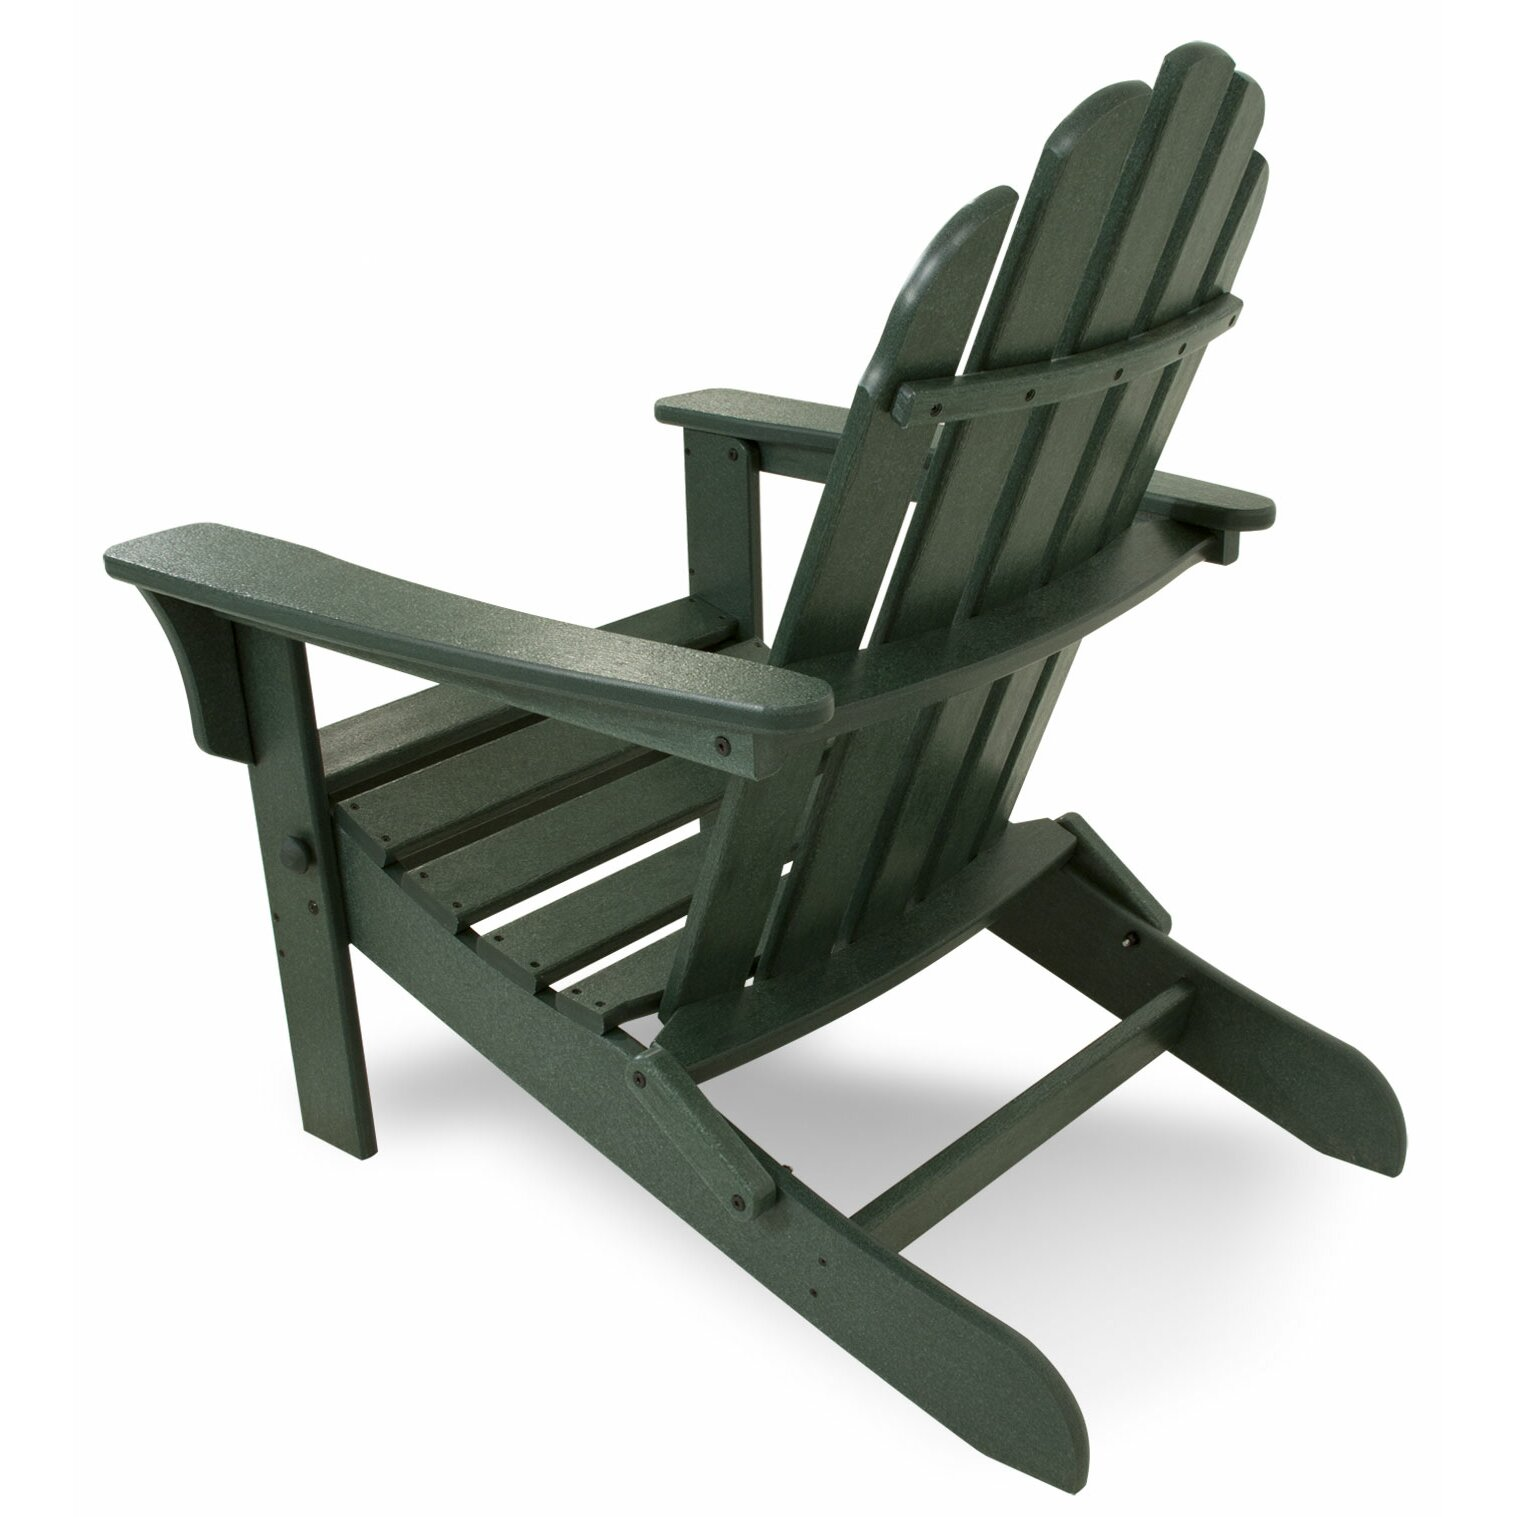 Trex trex outdoor cape cod adirondack chair and footstool for Chair and footstool